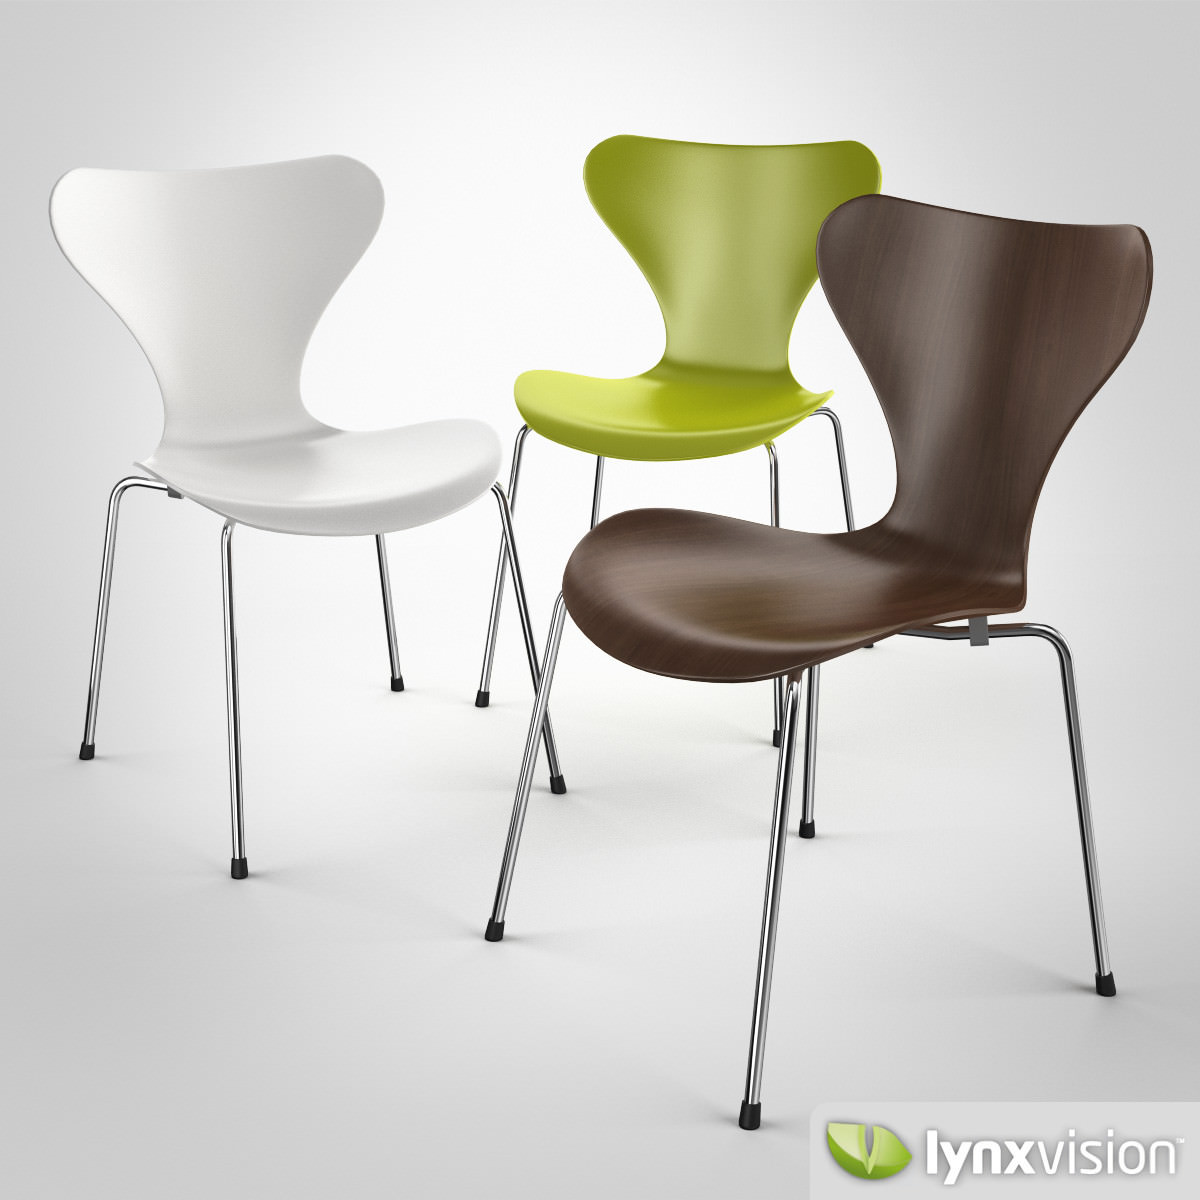 serie 7 chair by arne jacobsen 3d model cgtrader